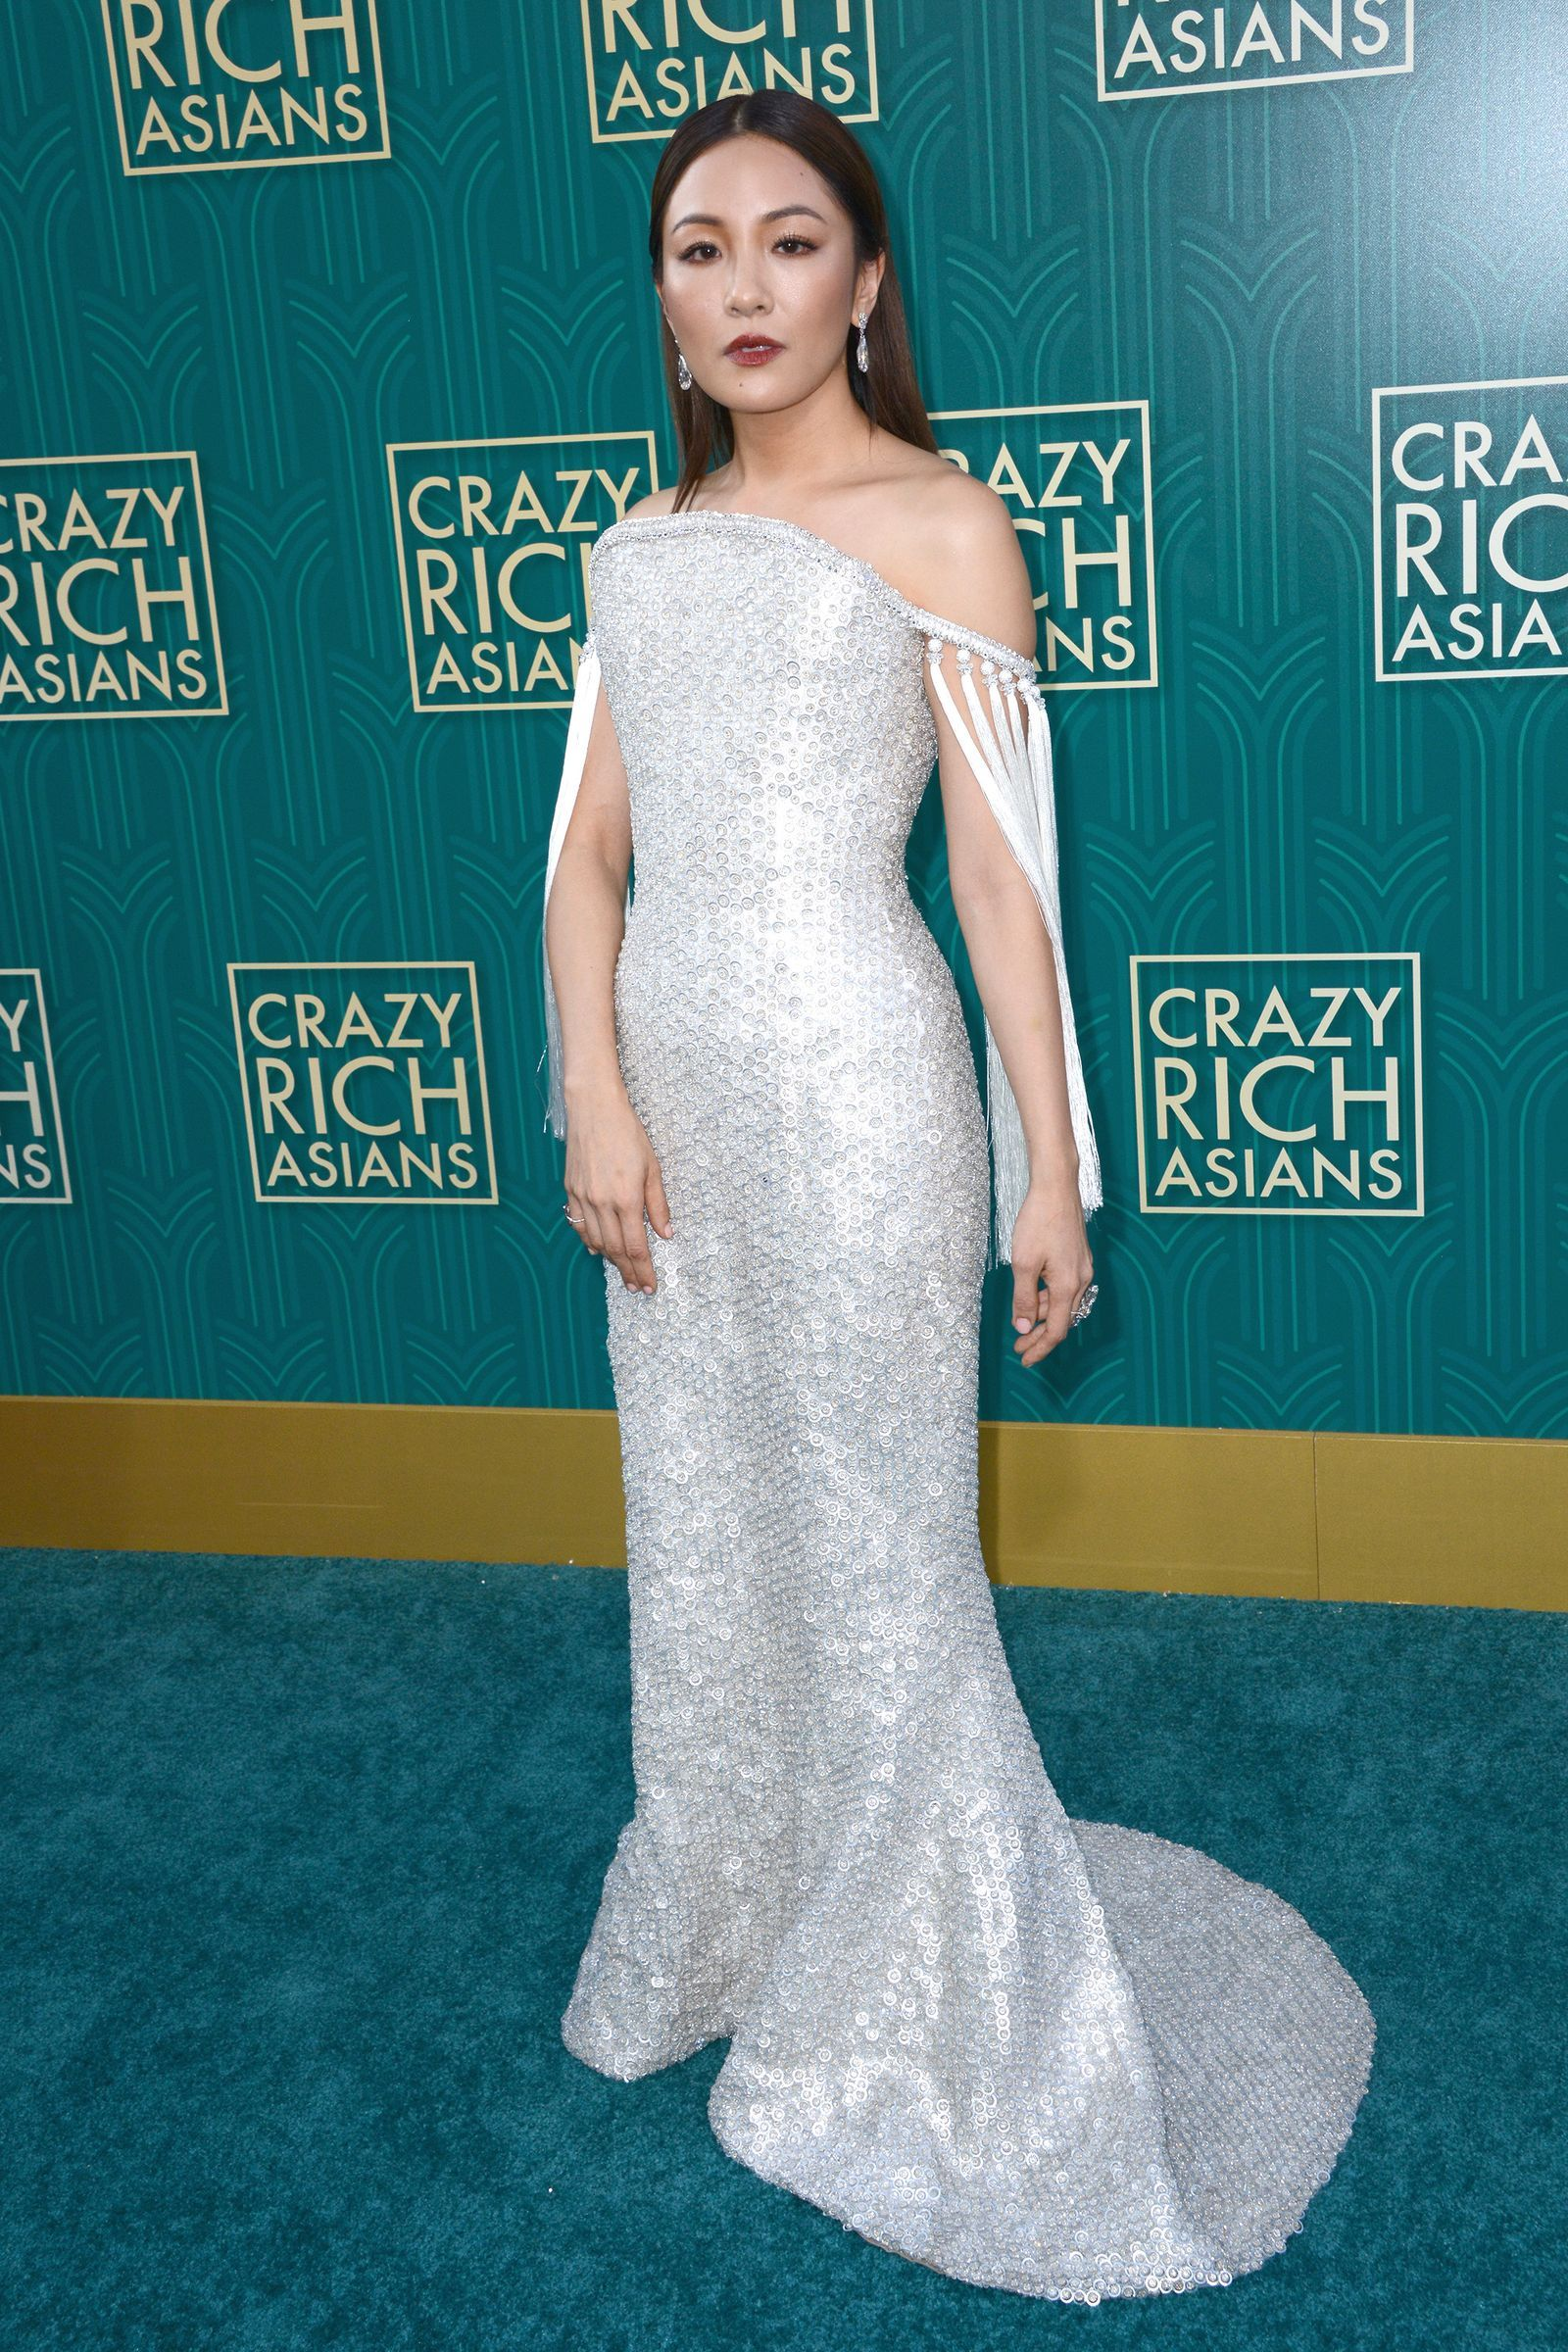 Constance Wu and Crazy Rich Asians co-star Gemma Chan